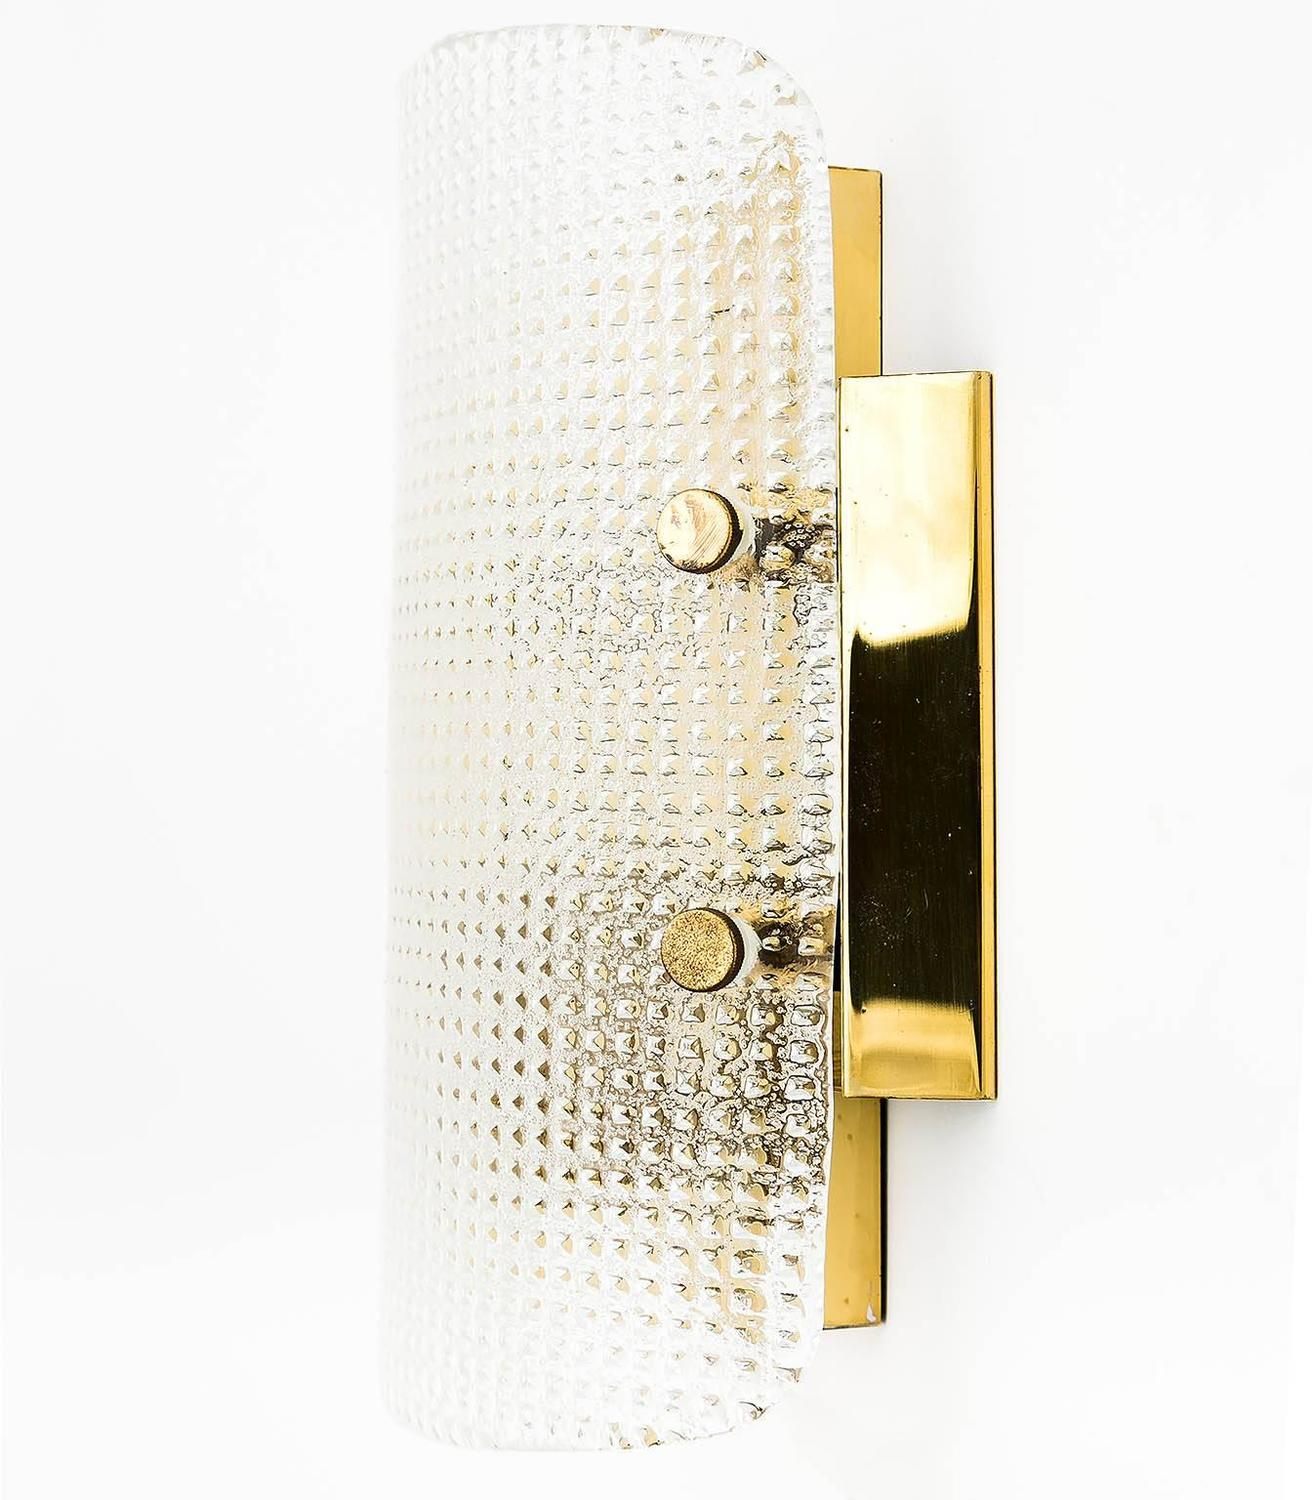 Patterned Glass Wall Lights : Pair of Hillebrand Wall Lights Sconces Brass Square Pattern Glass 1960s For Sale at 1stdibs